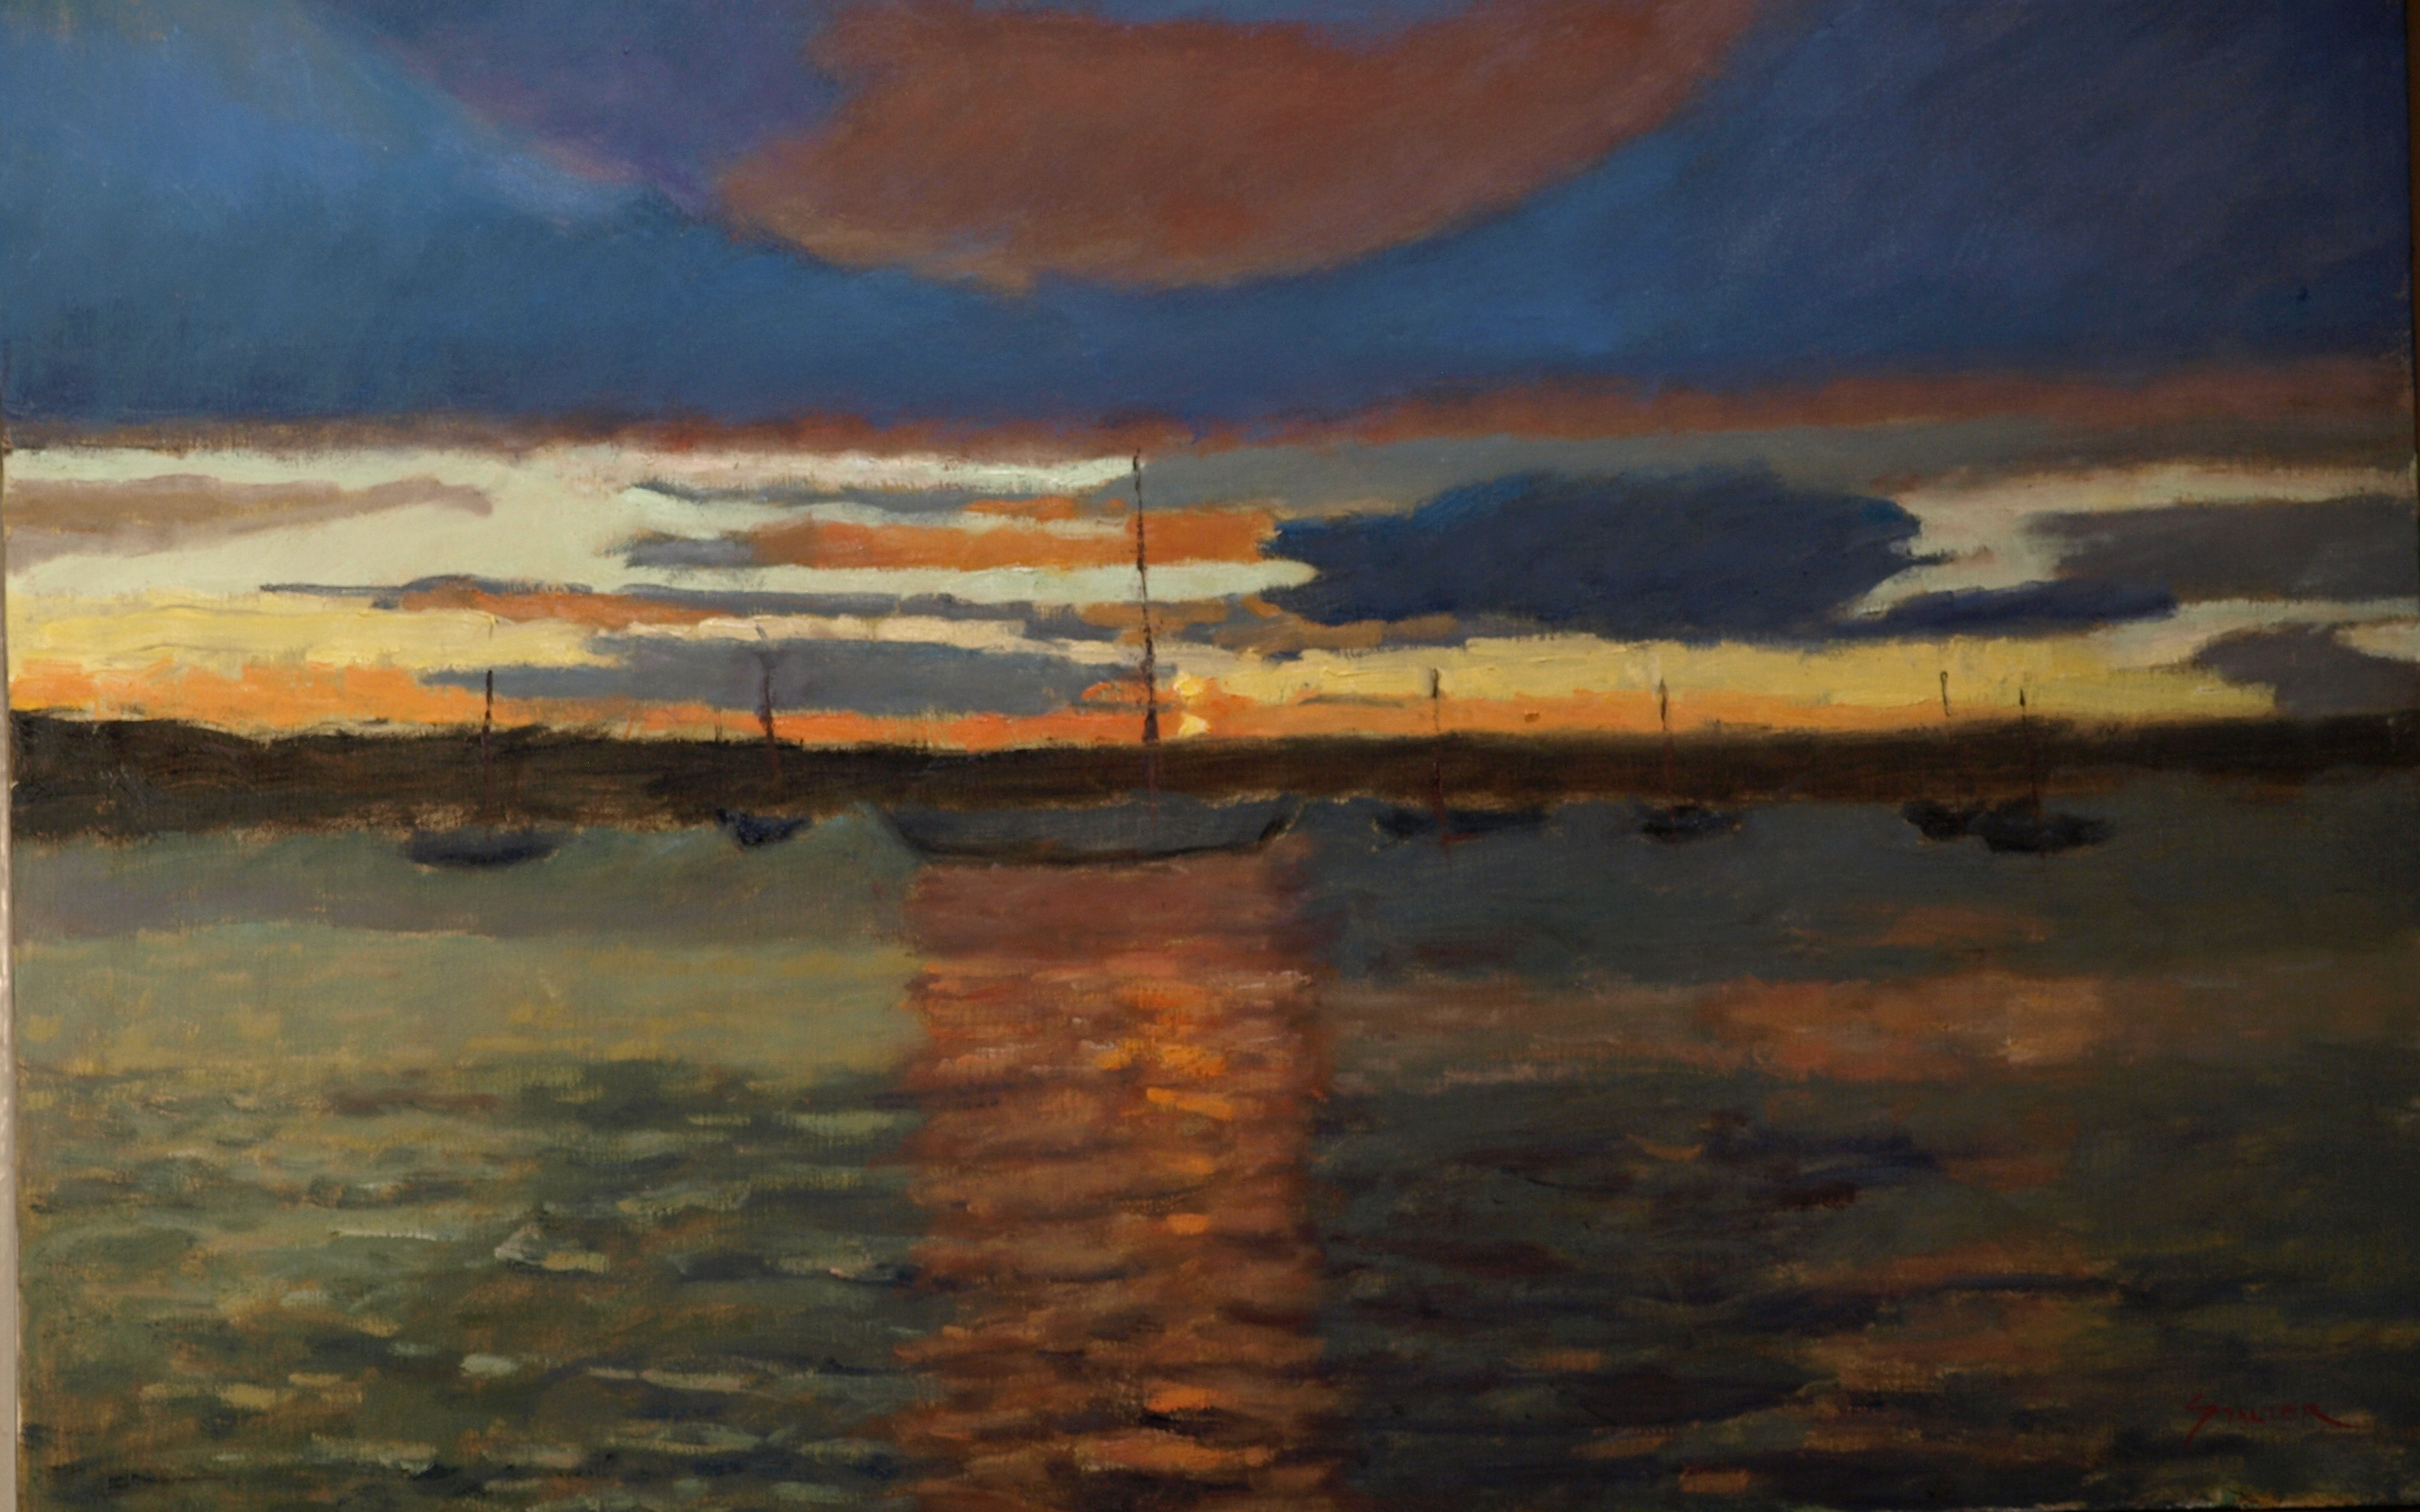 Sunset - Naragansett Bay, Oil on Canvas, 20 x 24 Inches, by Richard Stalter, $1200